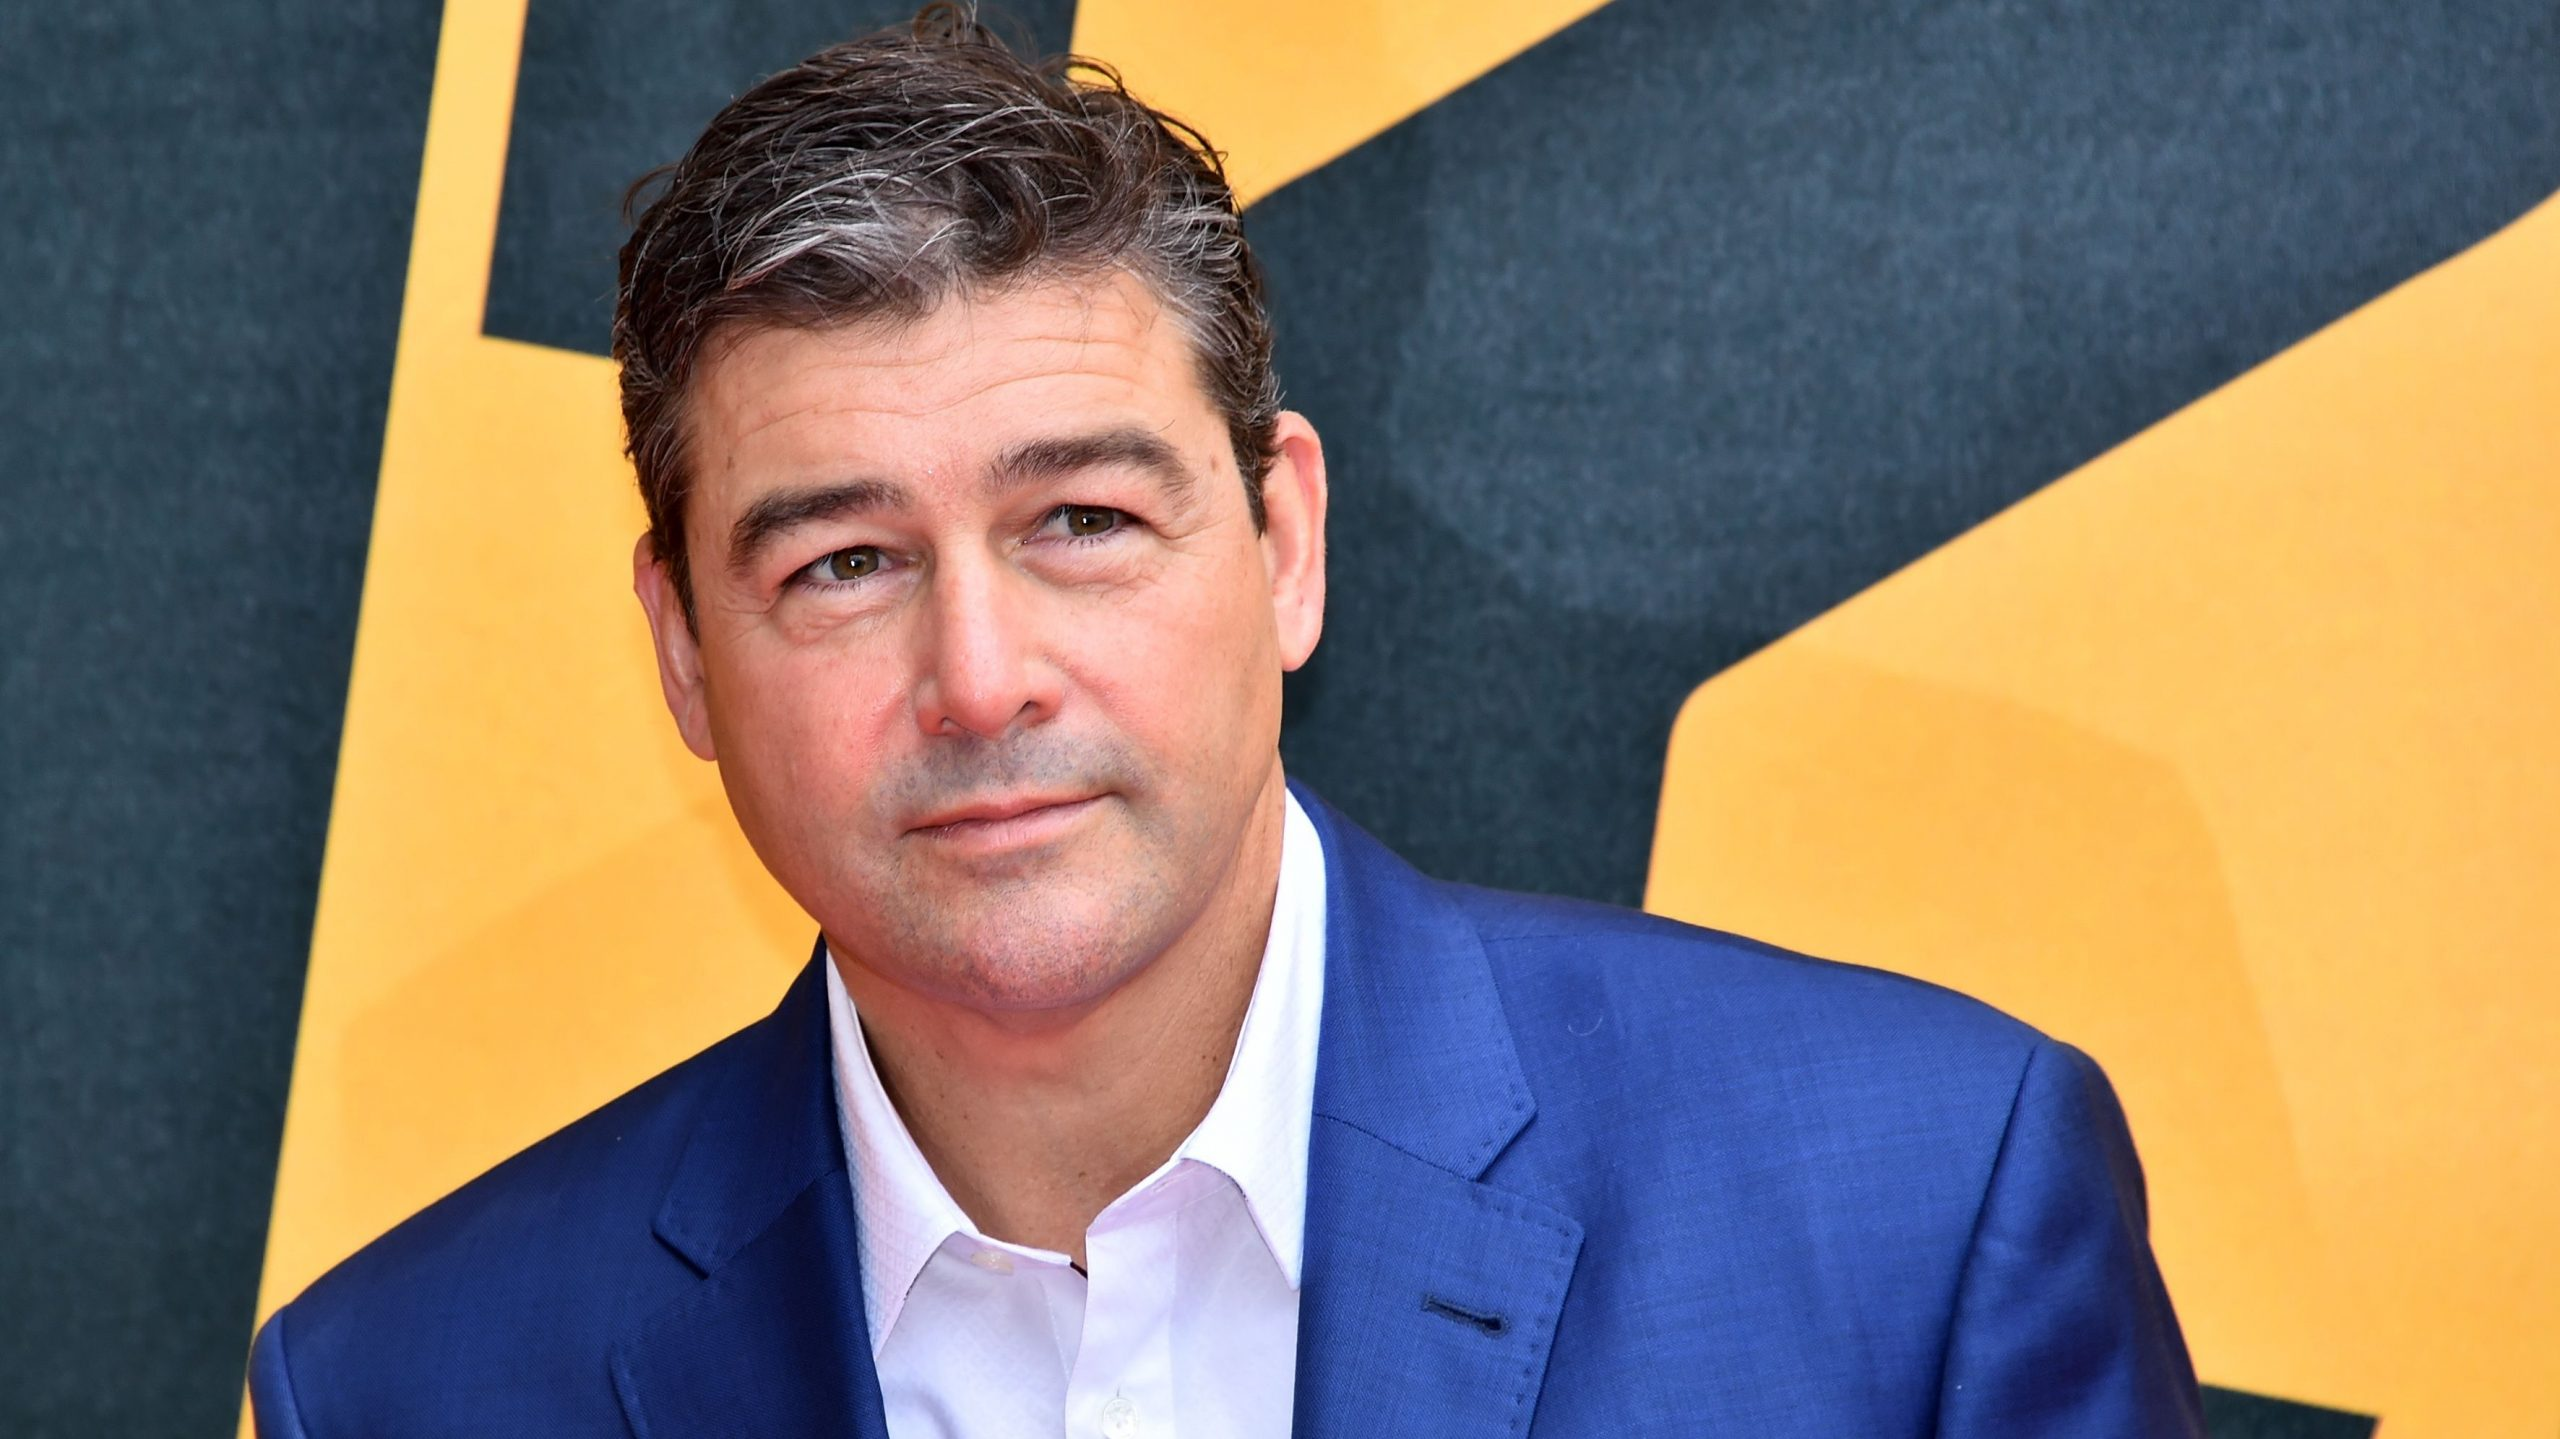 Kyle Chandler starred in The Midnight Sky